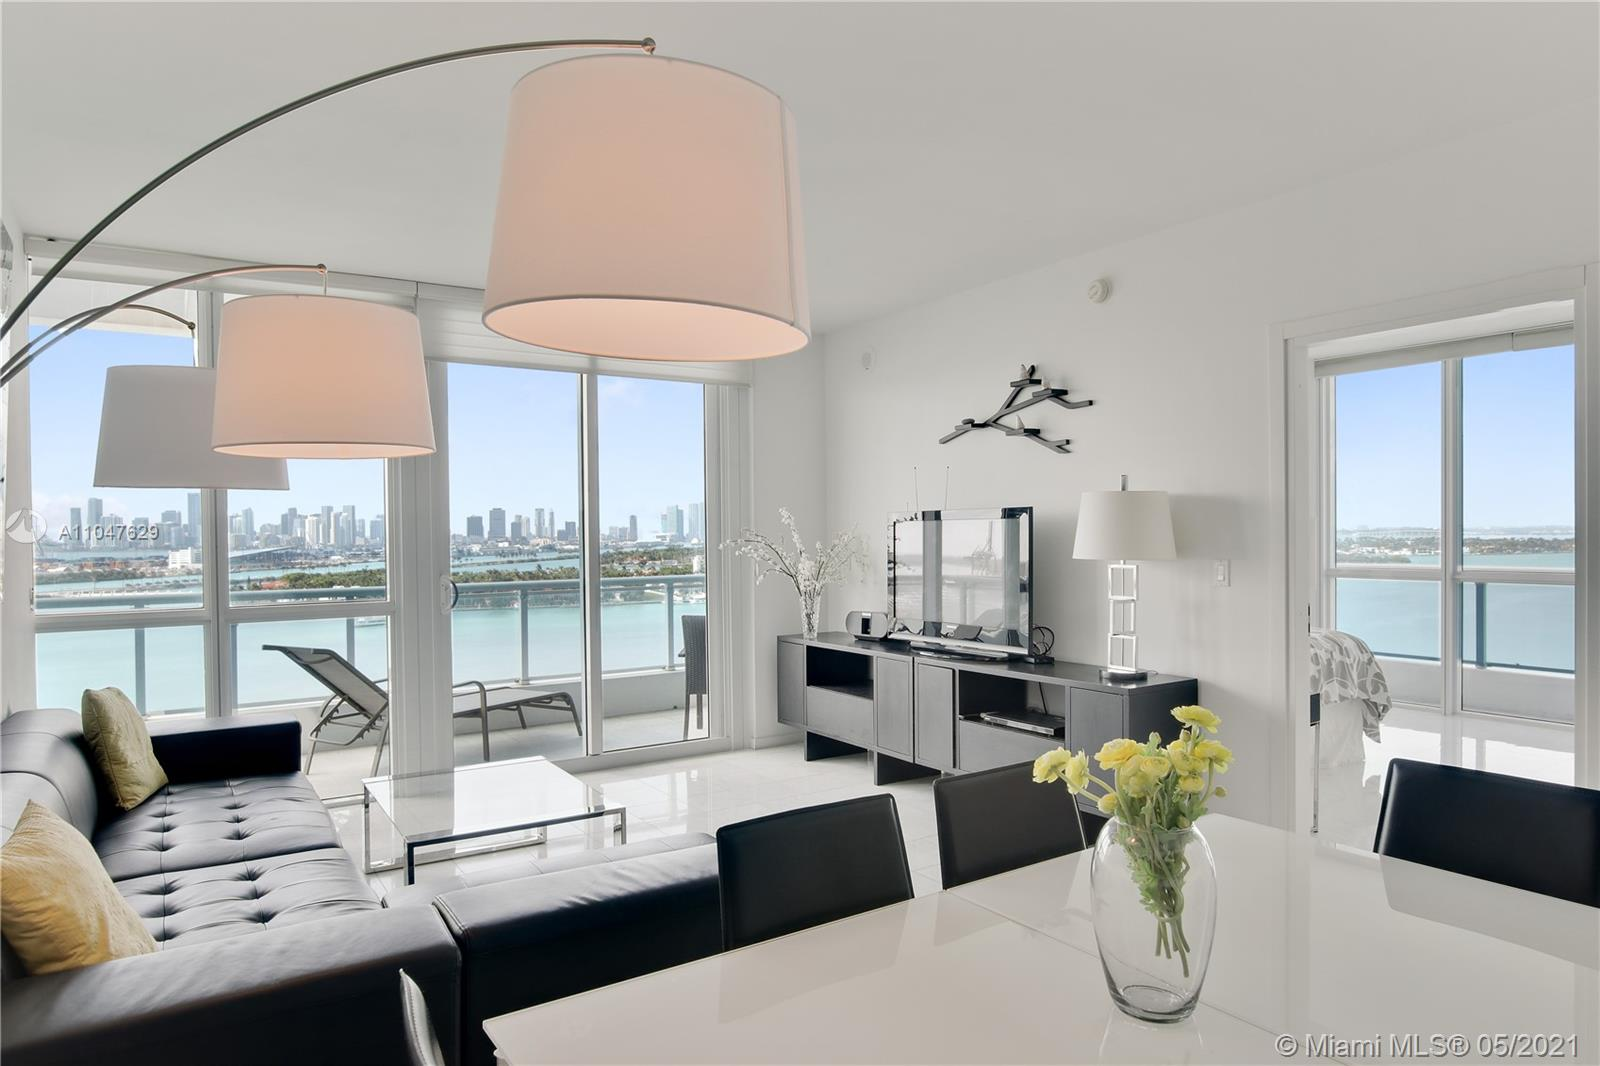 """Most desirable """"14 line"""" corner unit, with probably one of the nicest views Miami can offer: City skyline, Star Island, South Beach and the ocean. Both bedrooms have sliding glass doors leading to the wrap-around balcony with views from every angle! Stunning finishes includes: marble and porcelain floors, European cabinetry, marble countertops and stainless steel appliances. Amenities includes: swimming pool overlooking the bay, Jacuzzi , exercise center, sauna and steam room, 24 hours concierge and valet. Exceptional location with 100% walkability to the beach, shops & restaurants, minutes away from Downtown and Miami International Airport. New Bentley Bay Marina with boat docks available for rent up to 65 feet long vessel. The furniture are included with the sale. Ready to move-in!"""